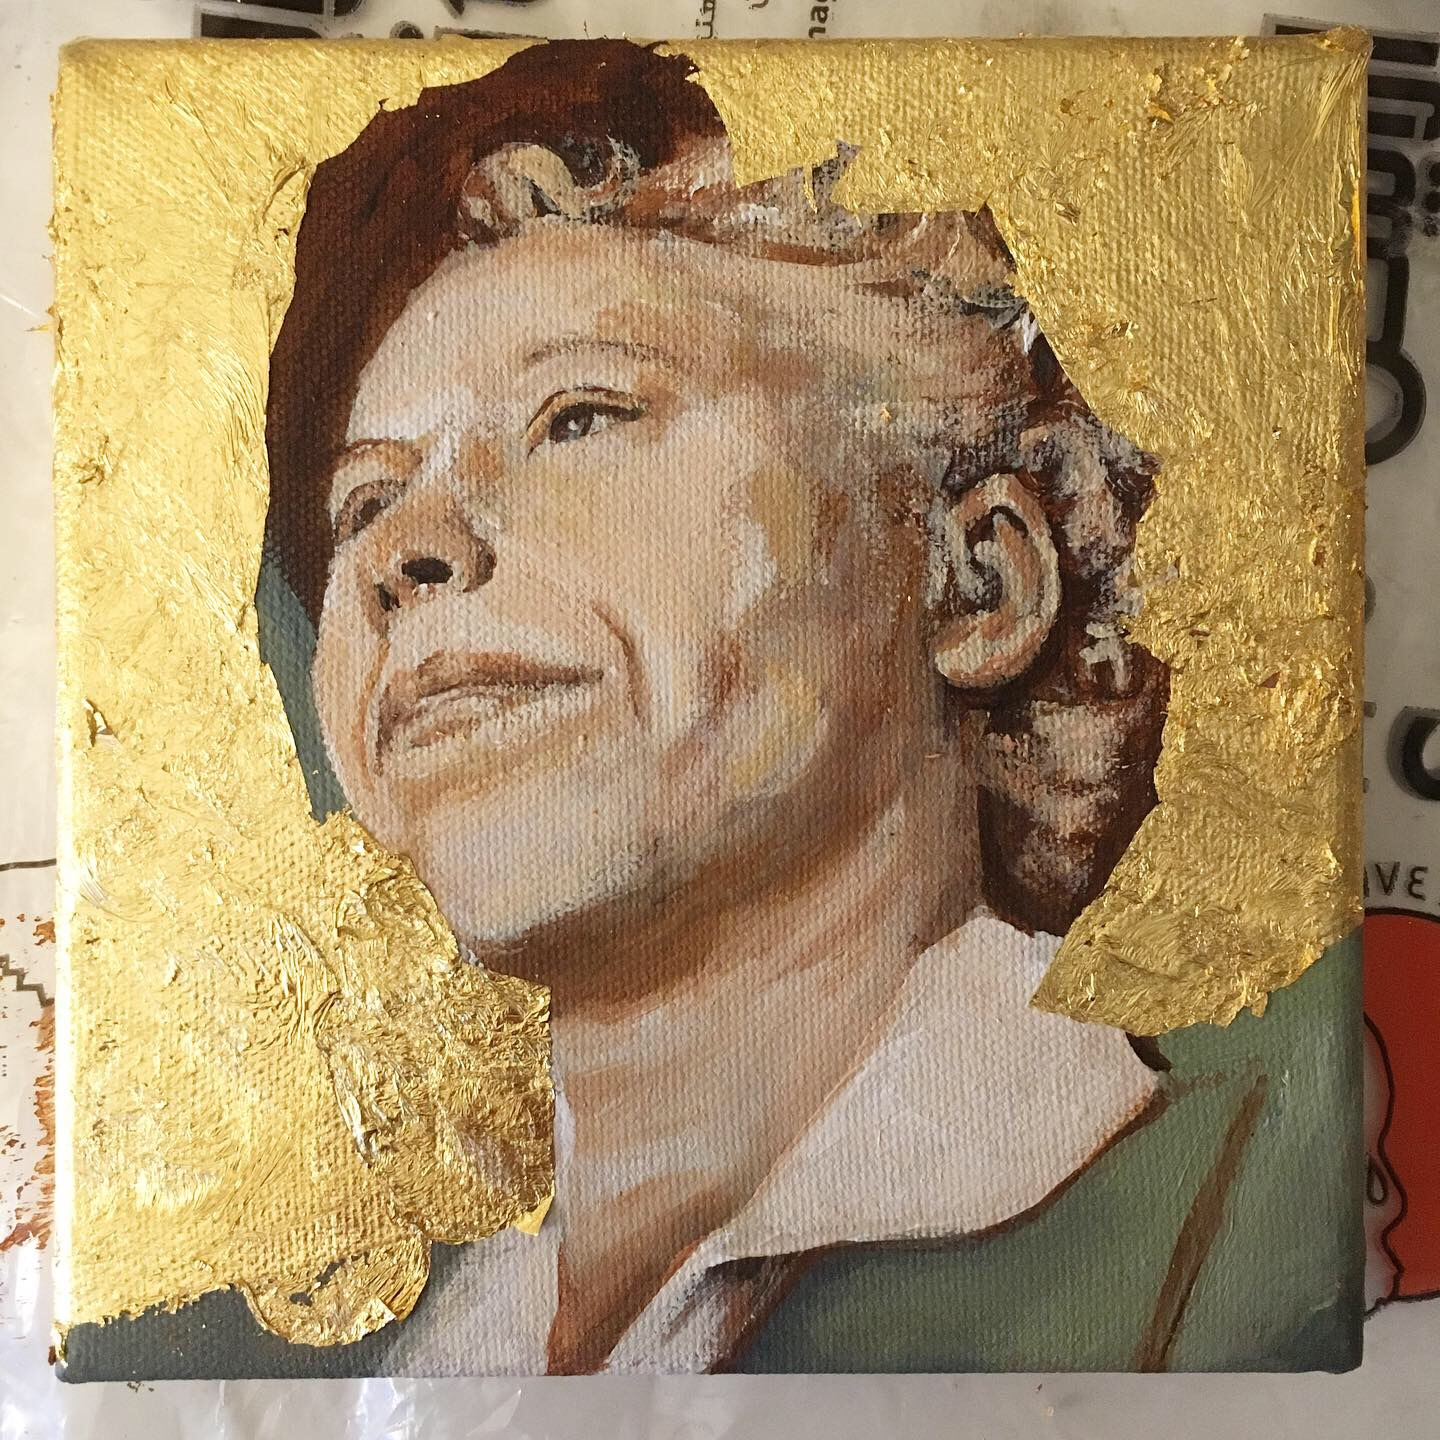 Read more about the history of gold leaf and how it's used to celebrate strong, norms changing women of the 1940s. #goldleaf #womenempowerment #womanartpowerful #womanartists